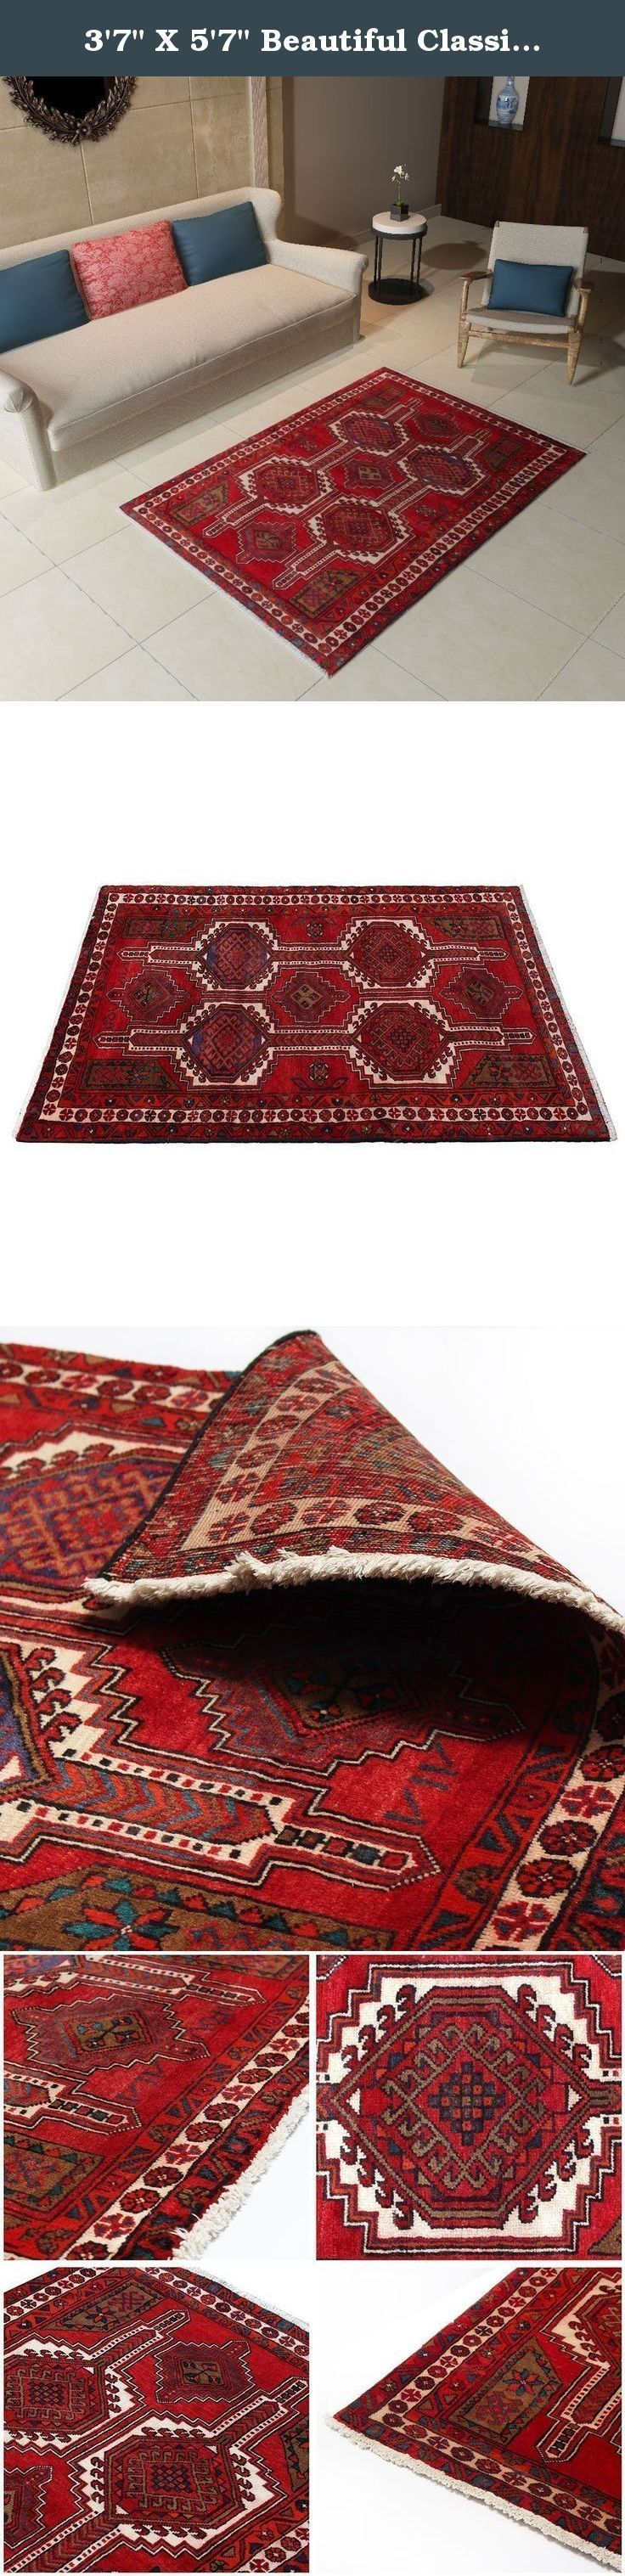 "3'7"" X 5'7"" Beautiful Classic Rug traditional Design from 1950s , Antique Rug Made of Merino Wool with Organic Colors, Oriental Bohemian Oushak Carpet,Code:R0101237, FBA (PS:42x9x9). Traditional designed hand woven rug which comes from pure lamb wool sheared at the Beginning of spring and a mixture of organic colors. It would make your place more attractive with its Wonderful color. Really traditional and Classic design. As an advantages of years of being in this business our price is…"